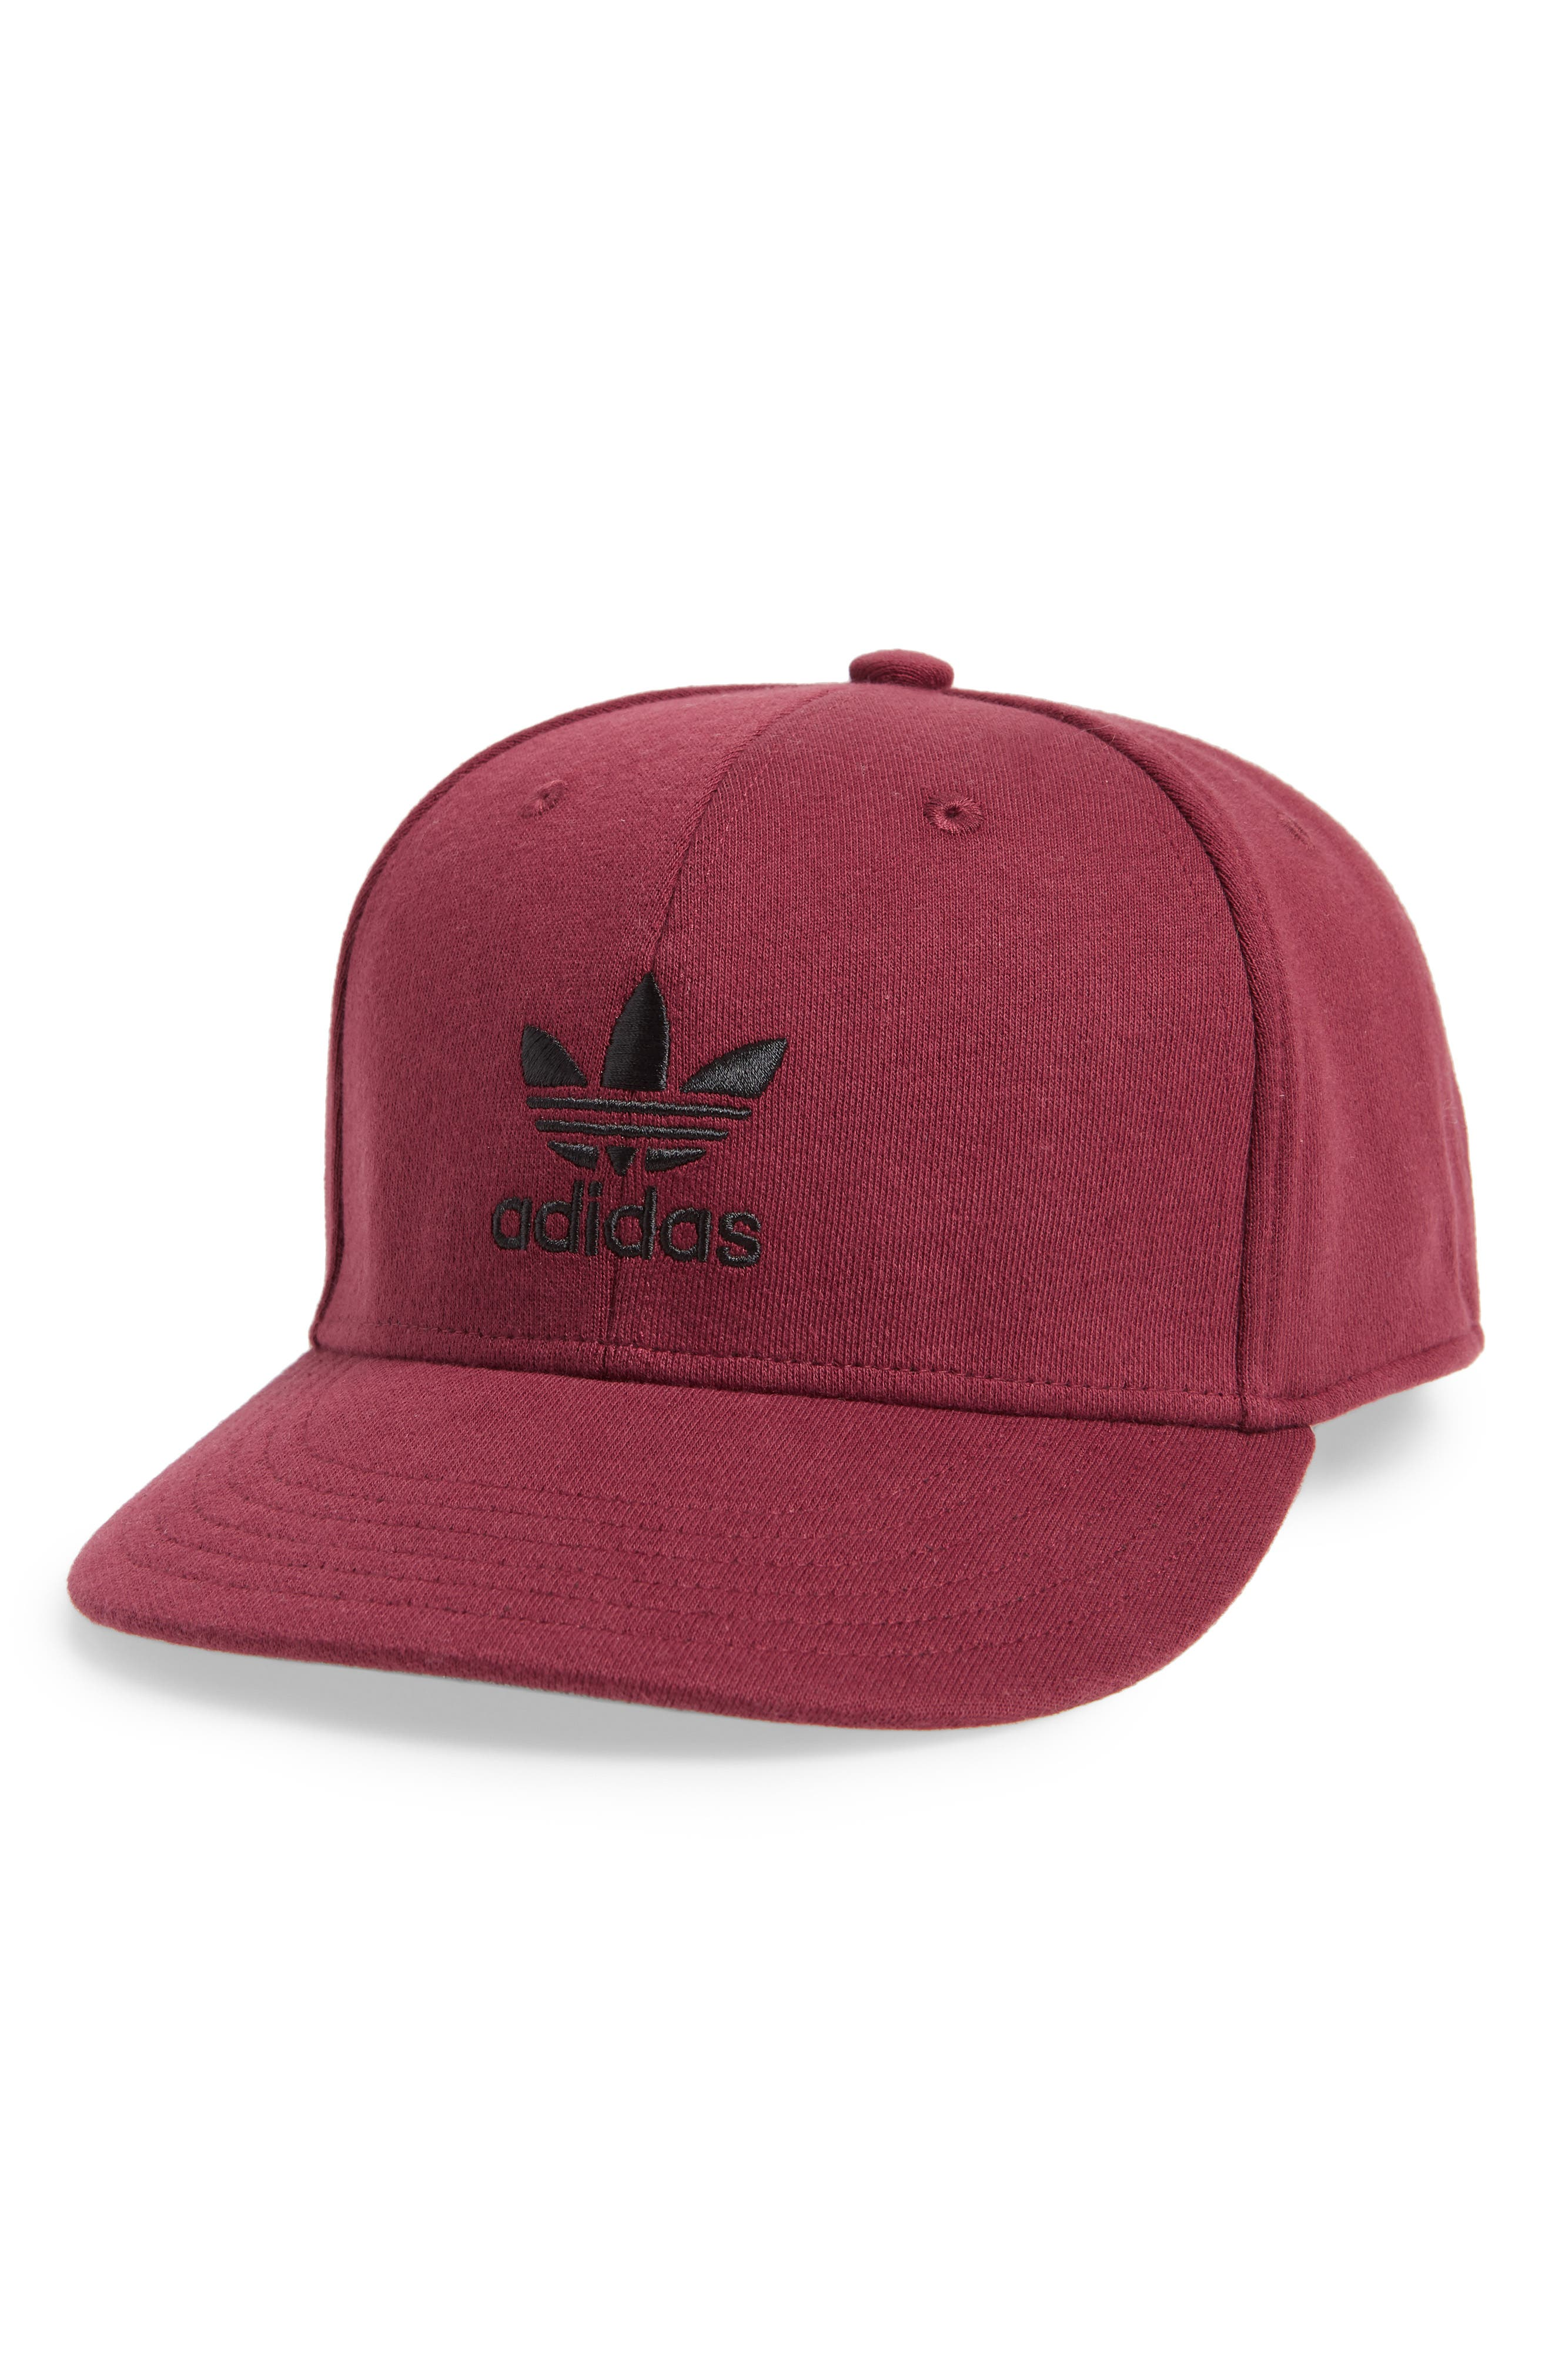 Durable cotton construction means lasting appeal for this classic cap  stamped with an iconic brand patch. Style Name  Adidas Originals Trefoil  Snapback ... 882e15d6ba4